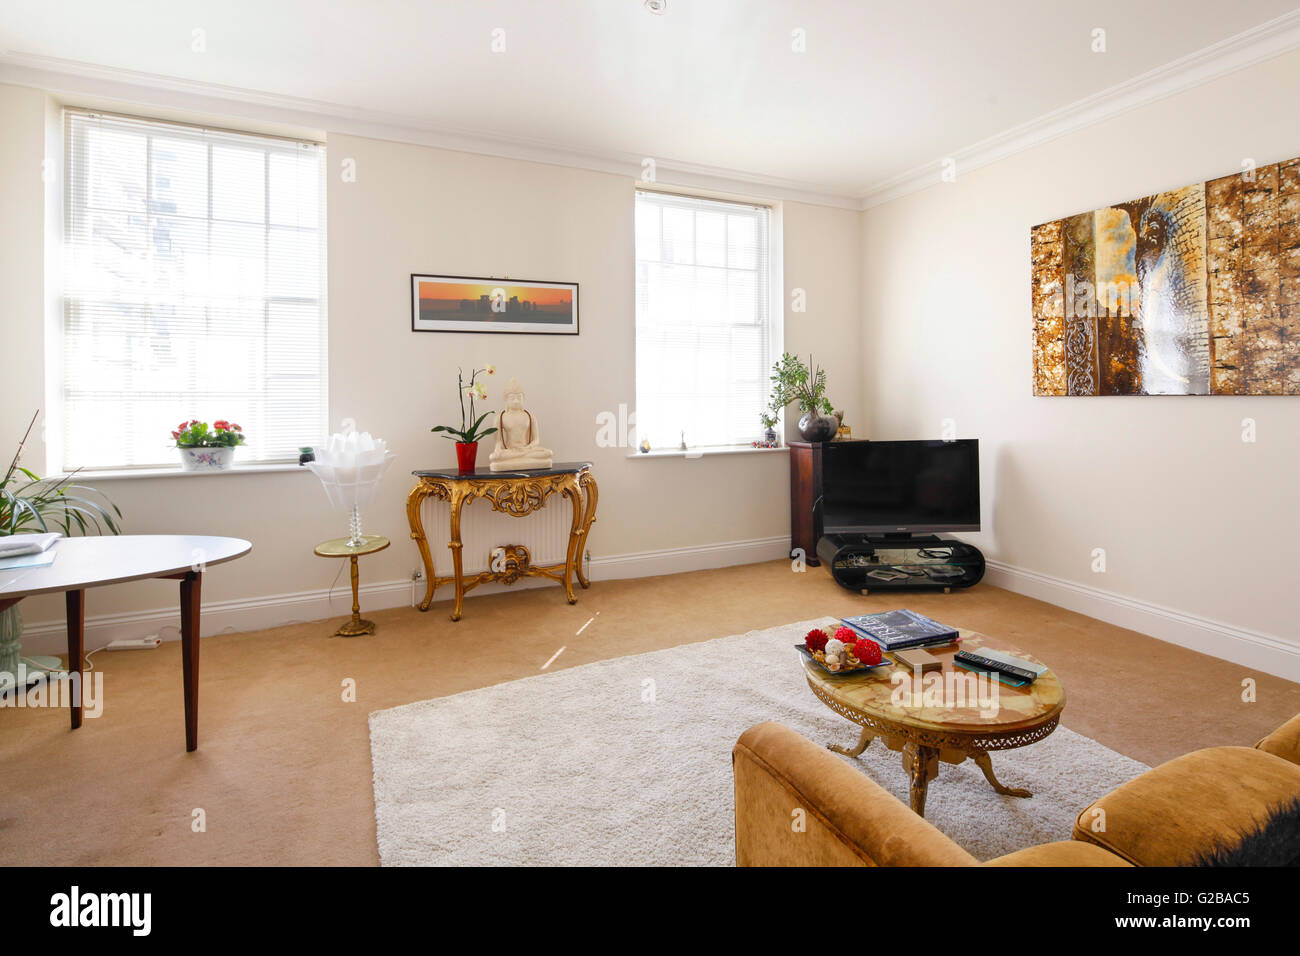 Cavendish Place, Brighton. Spacious traditional living room. - Stock Image